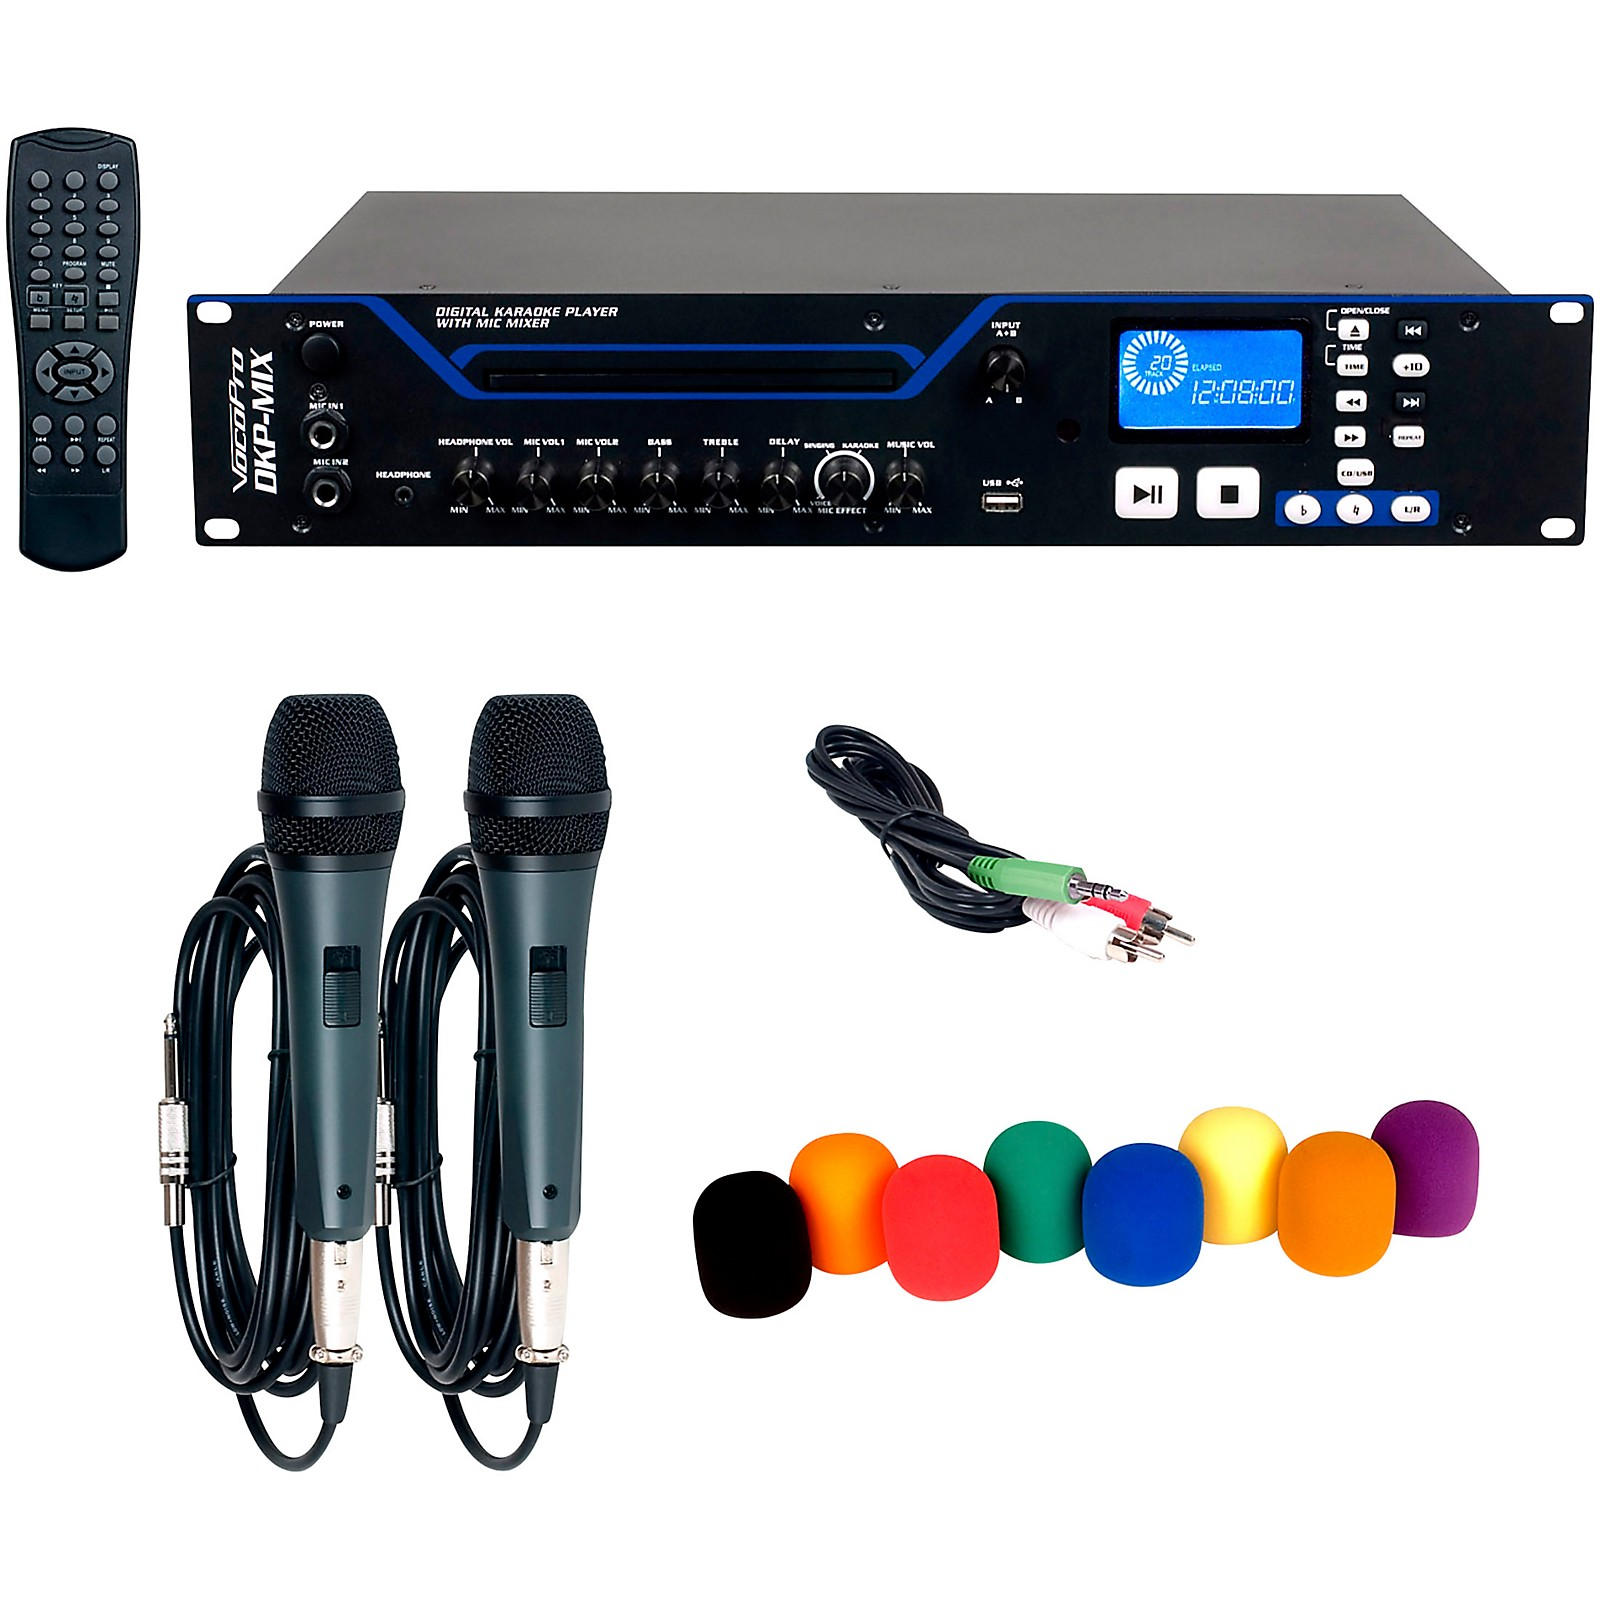 VocoPro DKP-MIX PLUS Digital Karaoke Player with Mixer, Microphone and Windscreen